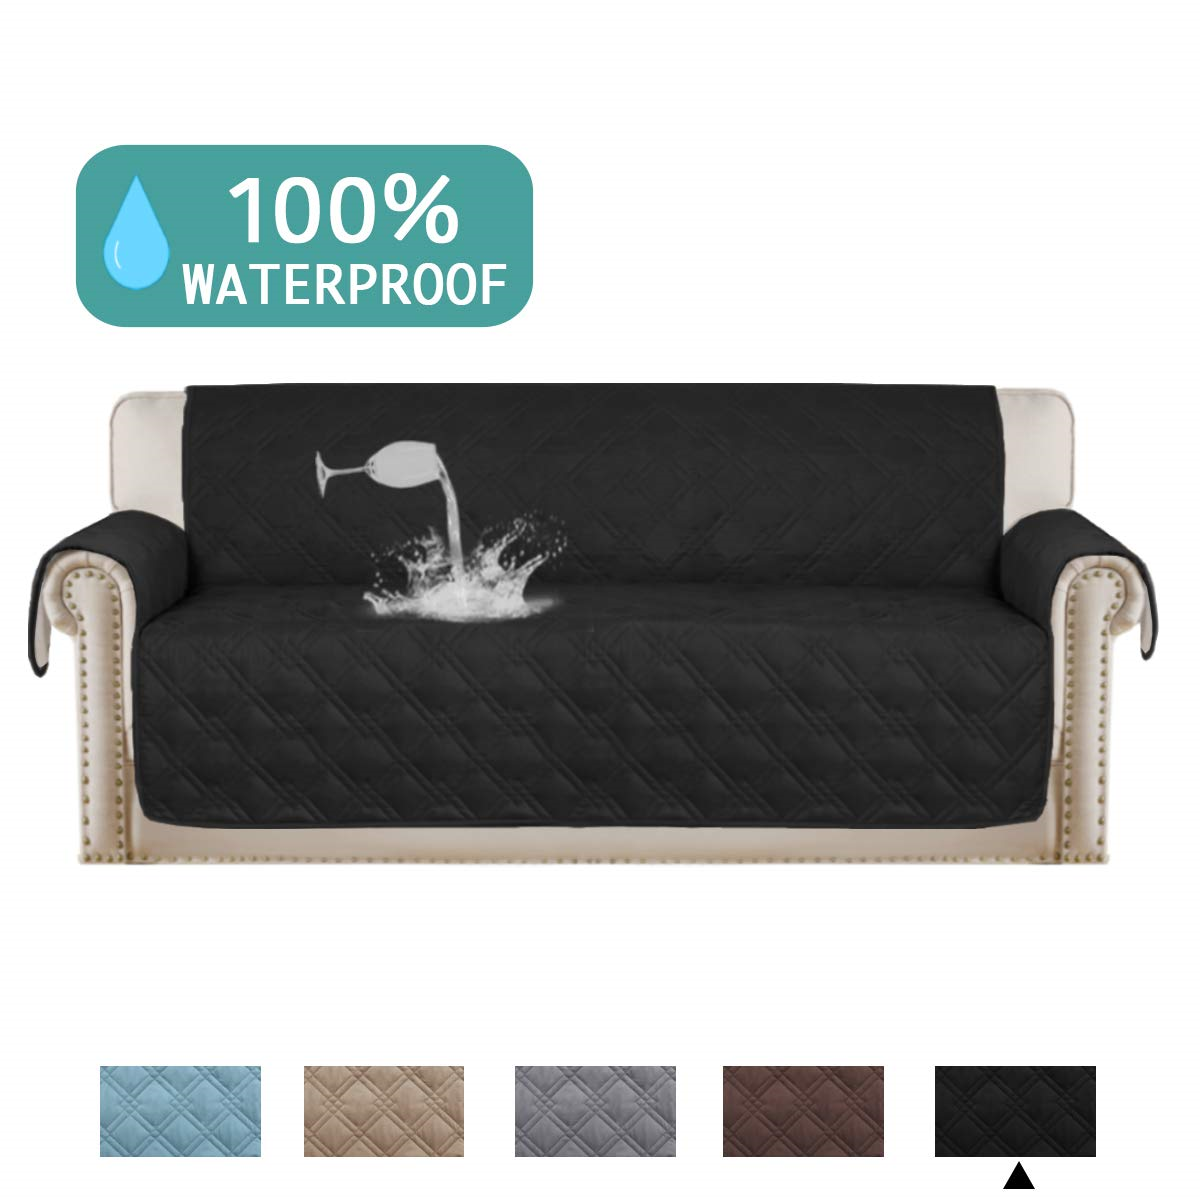 Turquoize 100 Waterproof Dog Couch Cover Quilted Sofa Slipcover Pet Couch Cover Kitchen Sofa Ideas Of Kitchen So With Images Kitchen Sofa Quilted Sofa Pet Couch Cover